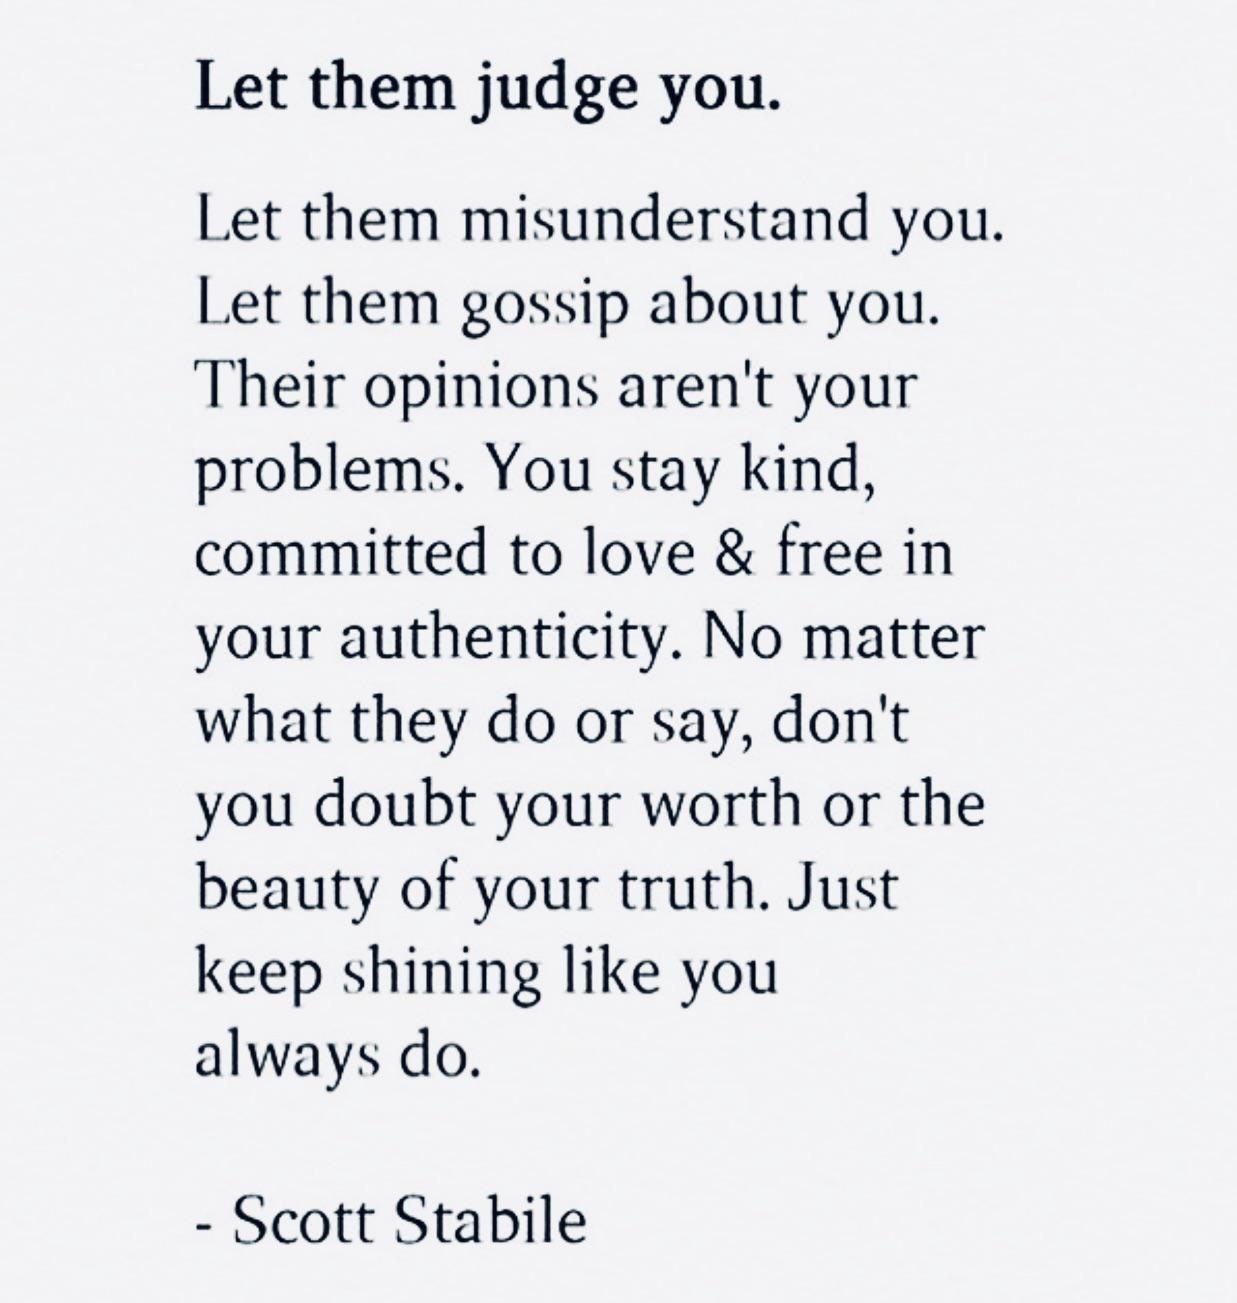 [Image] Their opinions aren't your problems.